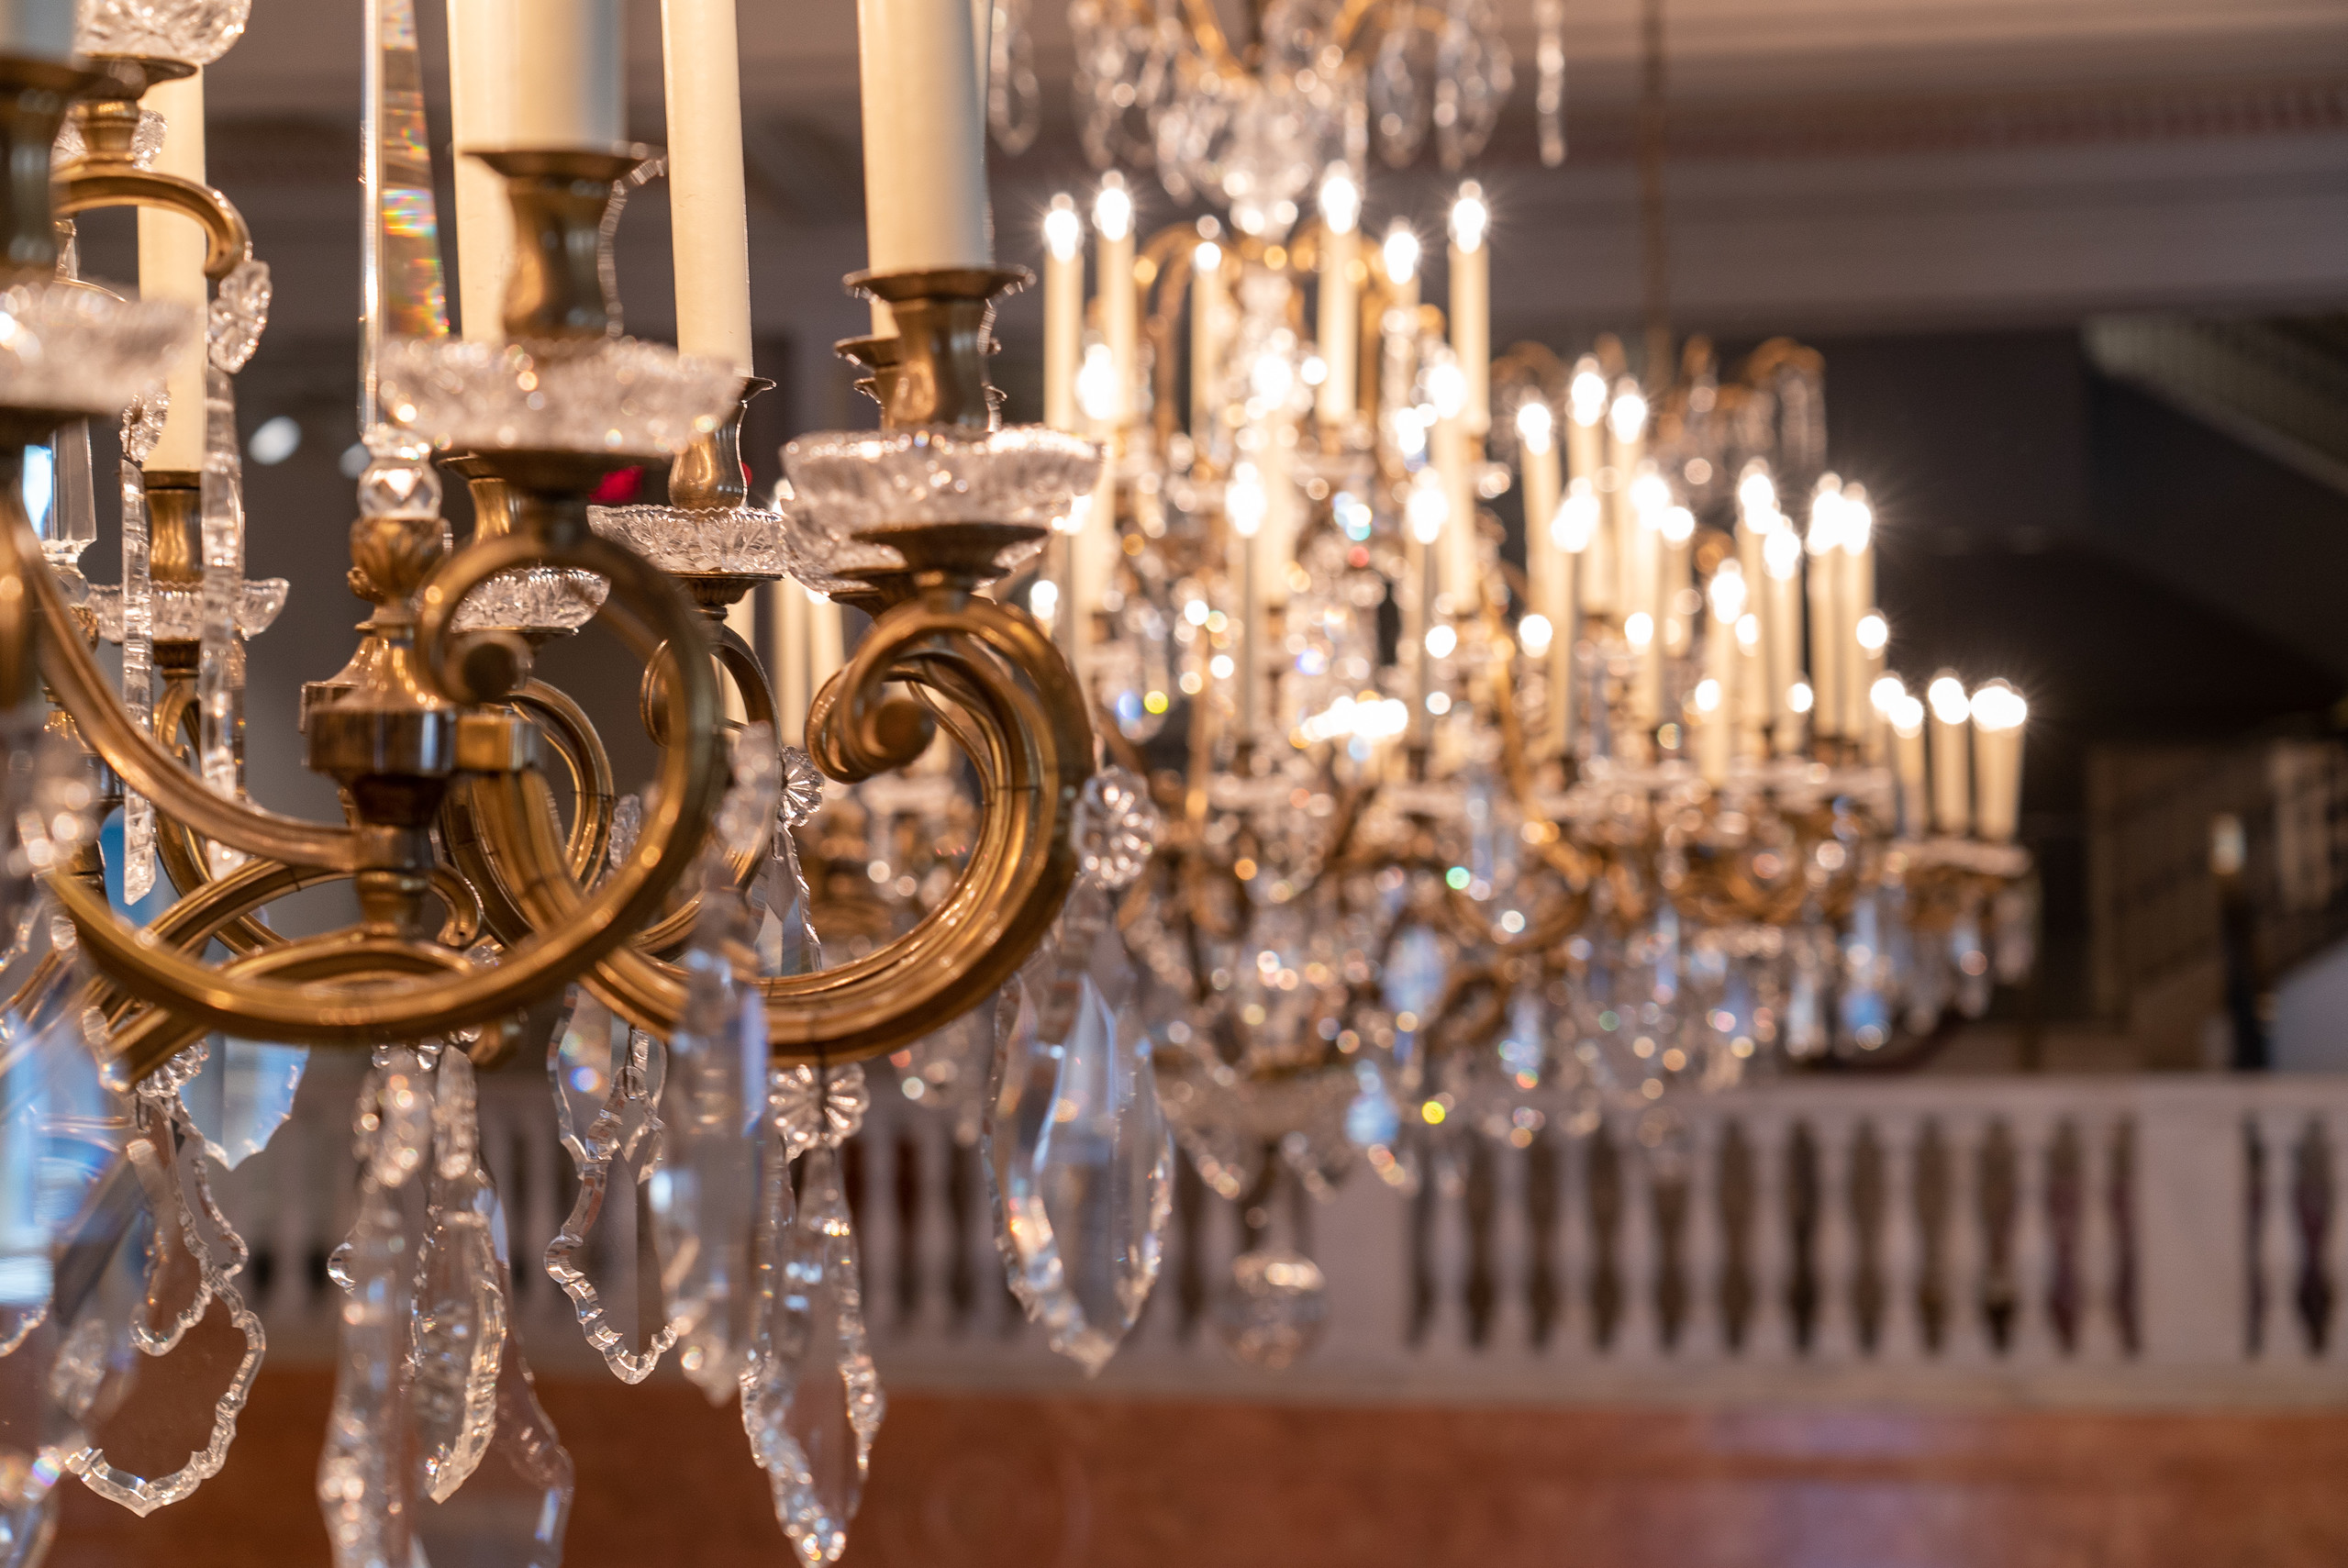 Close-up view of ornate gold and crystal chandeliers in the museum's Great Hall. The camera is focused on the chandelier in the foreground and the rest is out of focus.